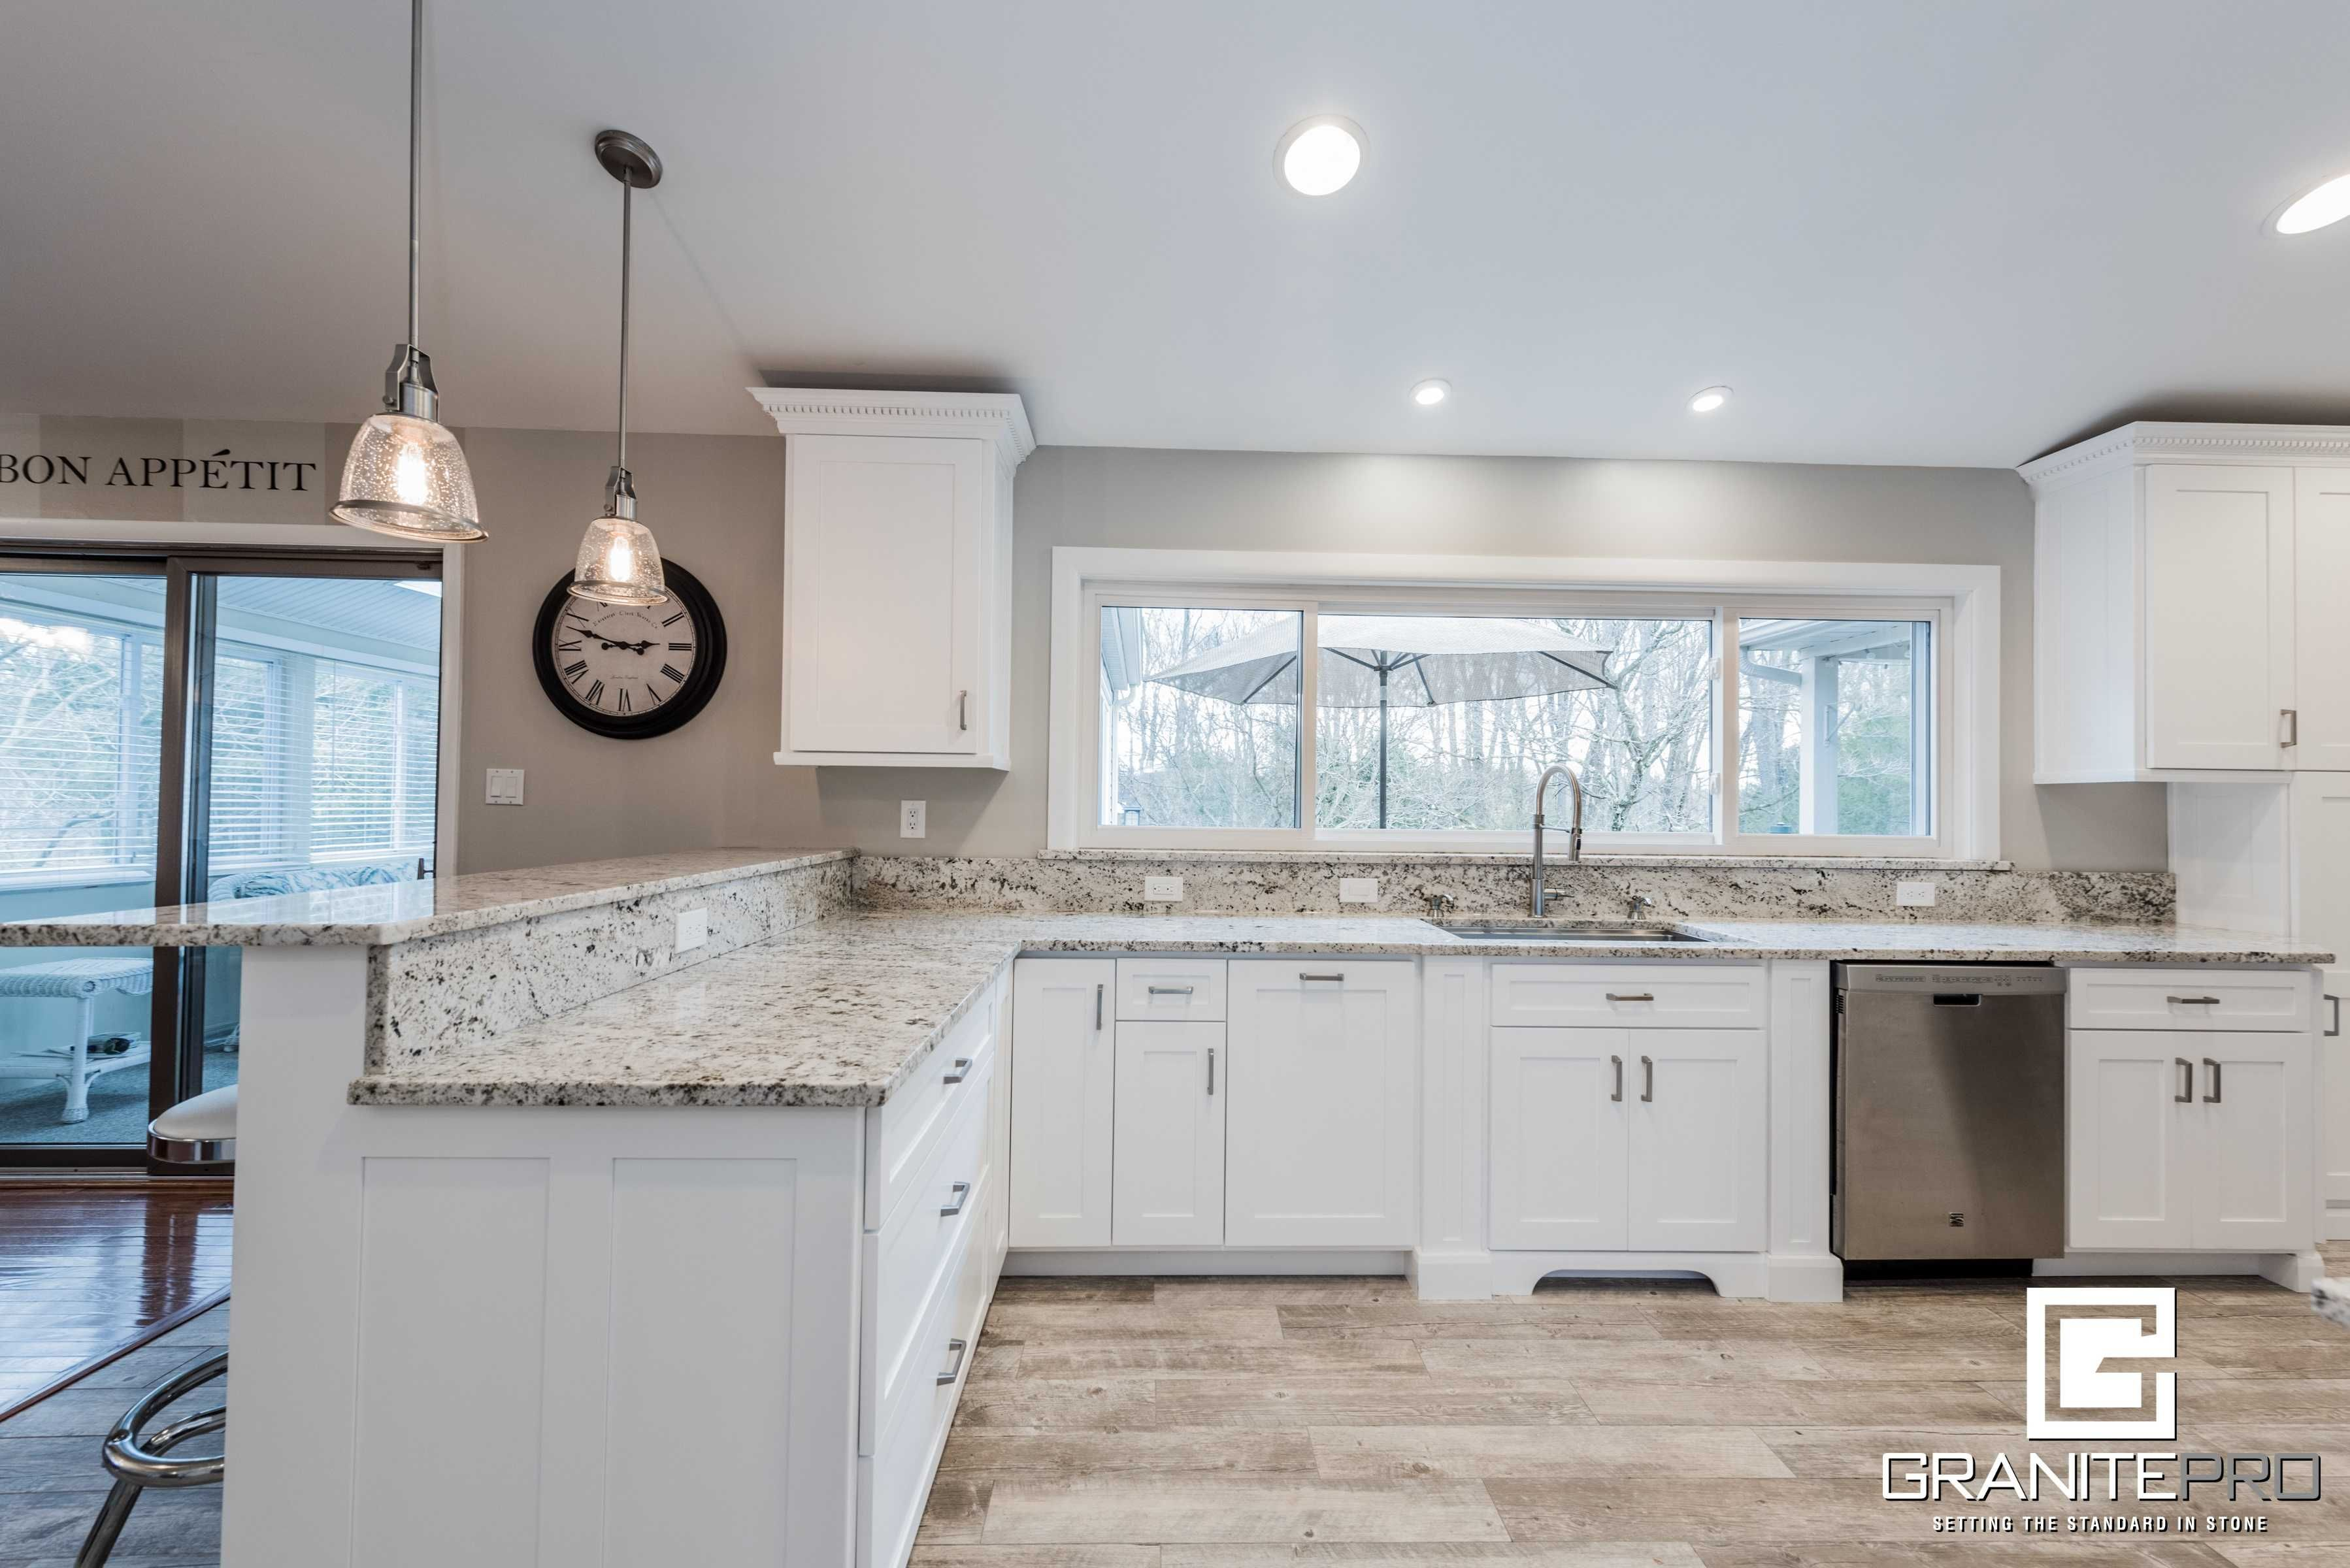 Granite Kitchen Countertops With White Cabinets Image Result For Biscotti White Granite Caleb S Building List In